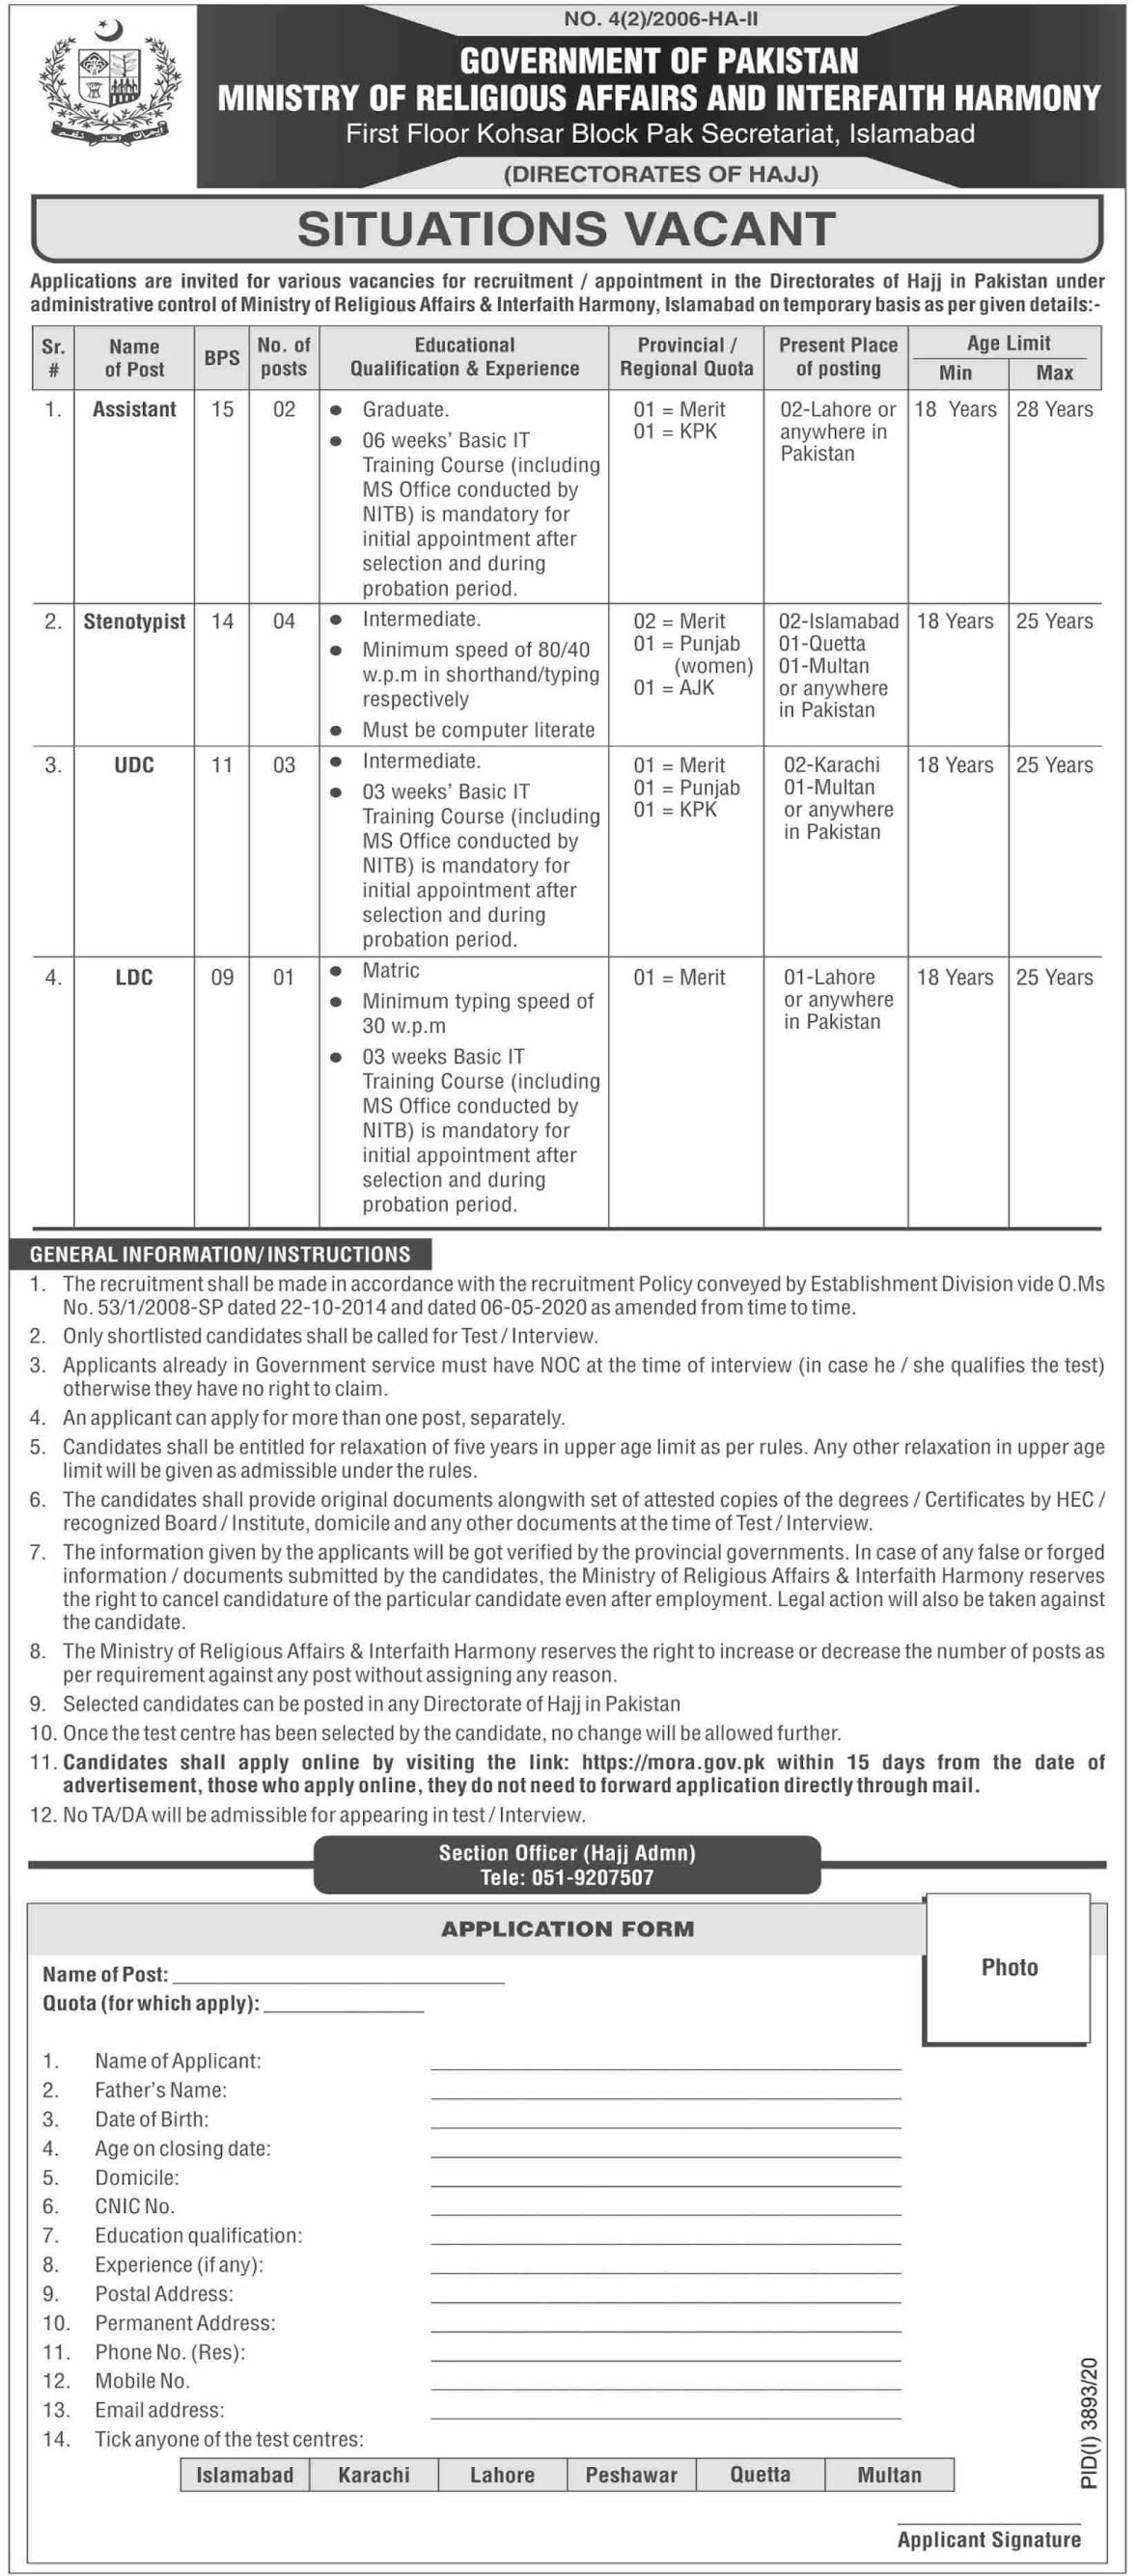 Latest Govt Jobs 2021 - Ministry of Religious Affairs & Interfaith Harmony Jobs 2021 - Download Job Application Form - mora.gov.pk